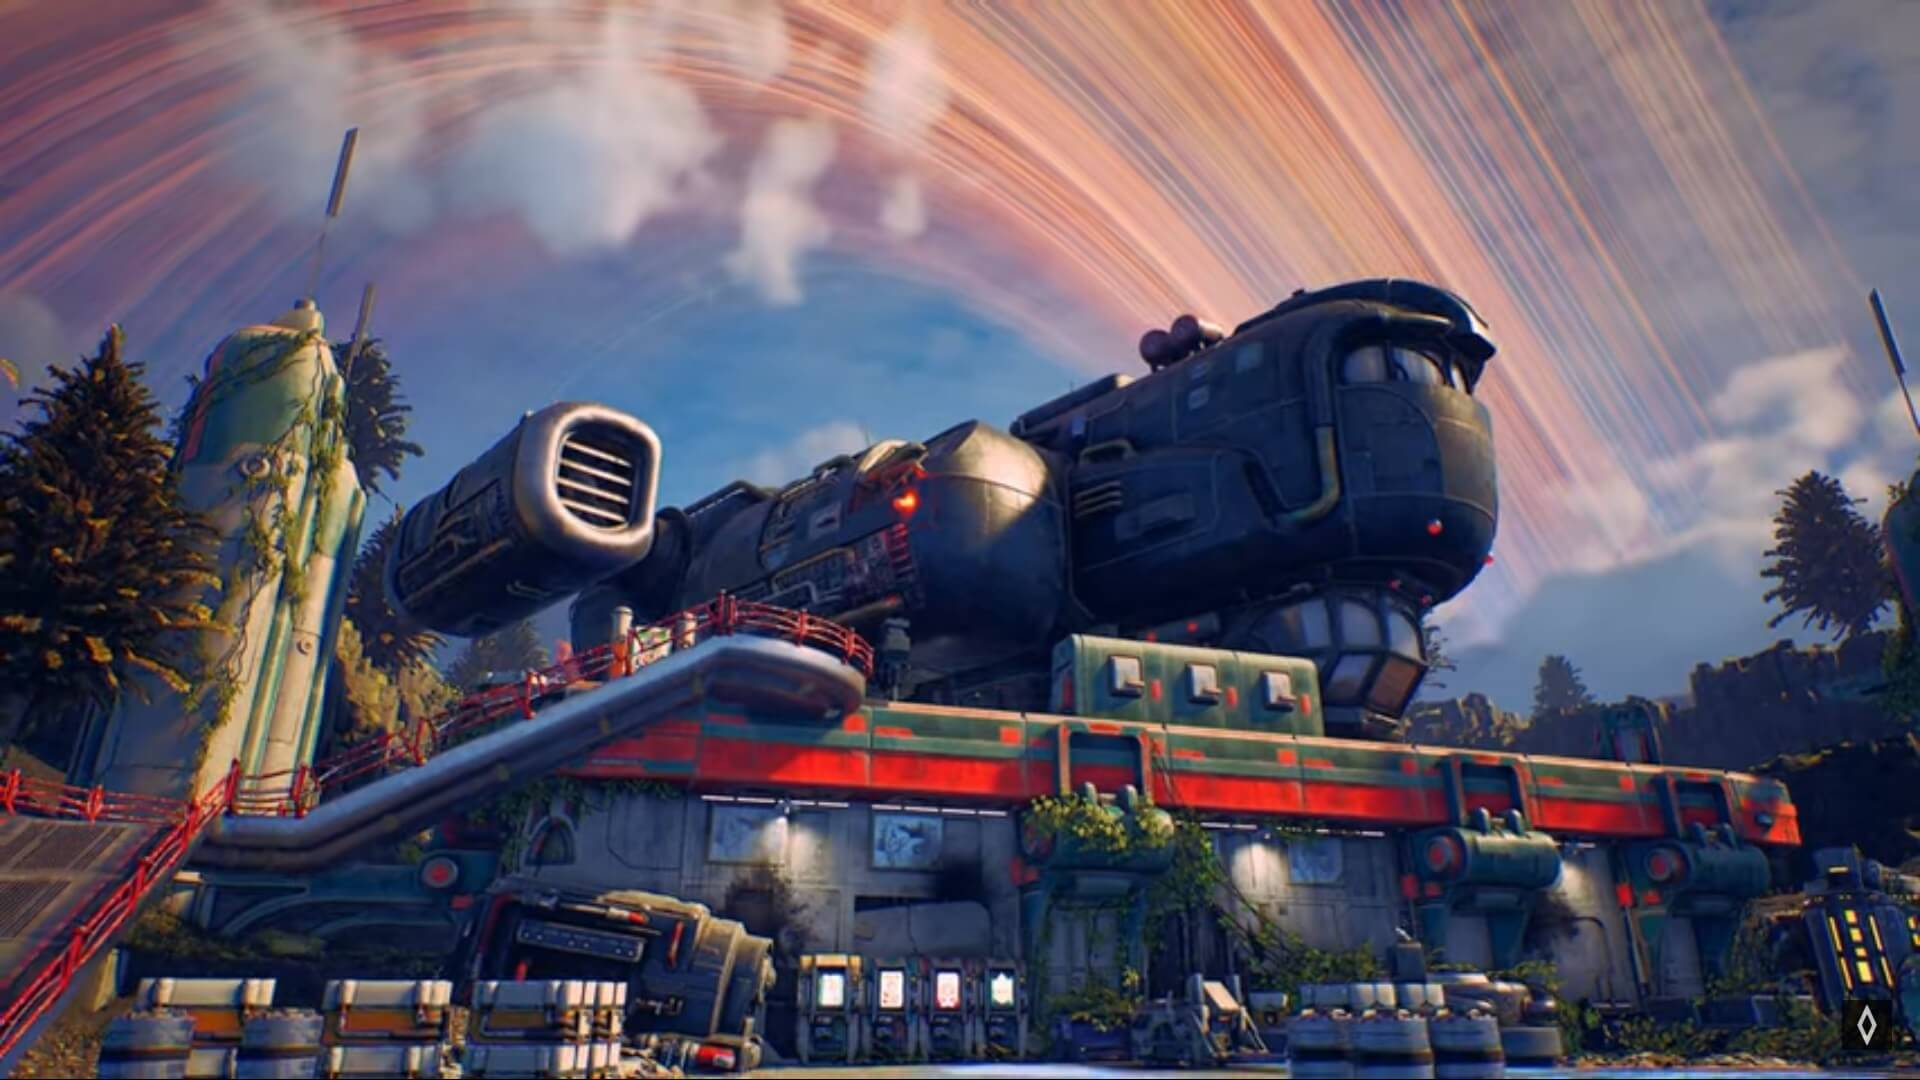 The Outer Worlds Newest Trailer Showcases Abilities, Weapons, and Aliens